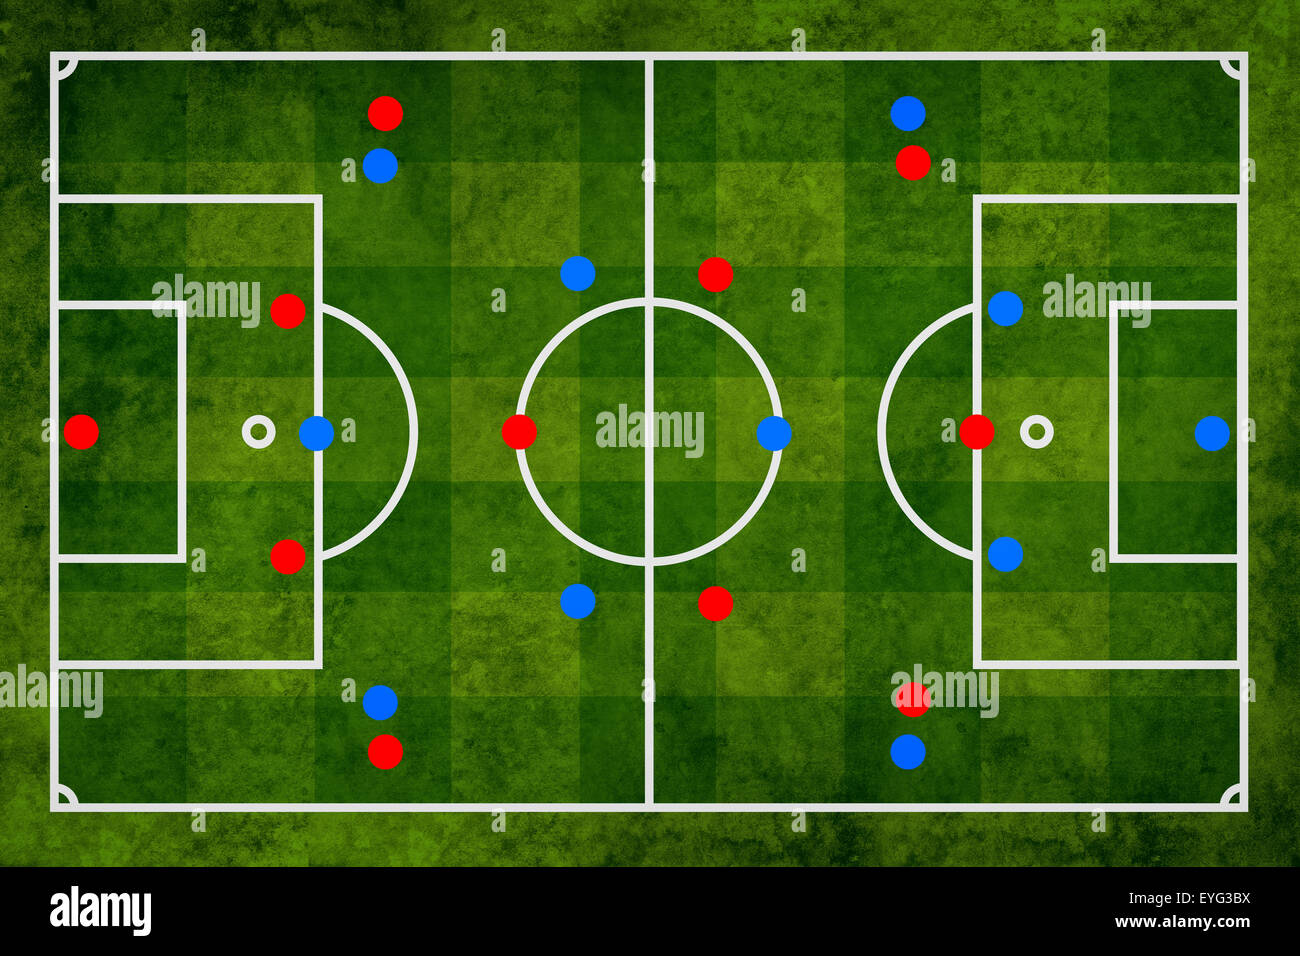 Soccer strategy and tactical preparation of the game, abstract scheme, football pitch illustration - Stock Image